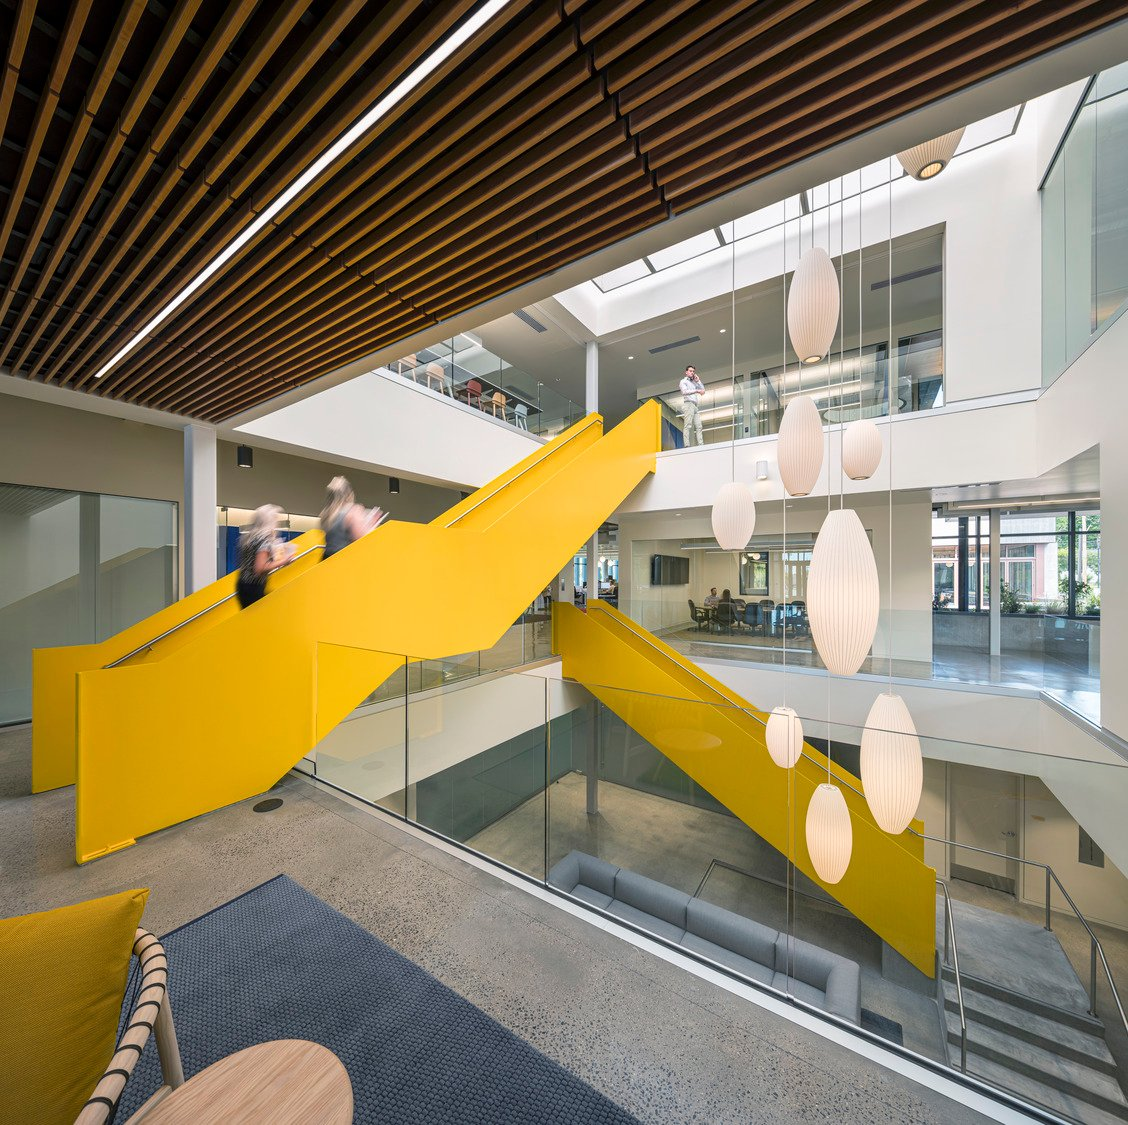 As Okland's logo is yellow the color was used sparingly, apart from the main circulation stair where concrete risers are enclosed in lacquered yellow steel, indicative of construction vehicles. Tim Griffith